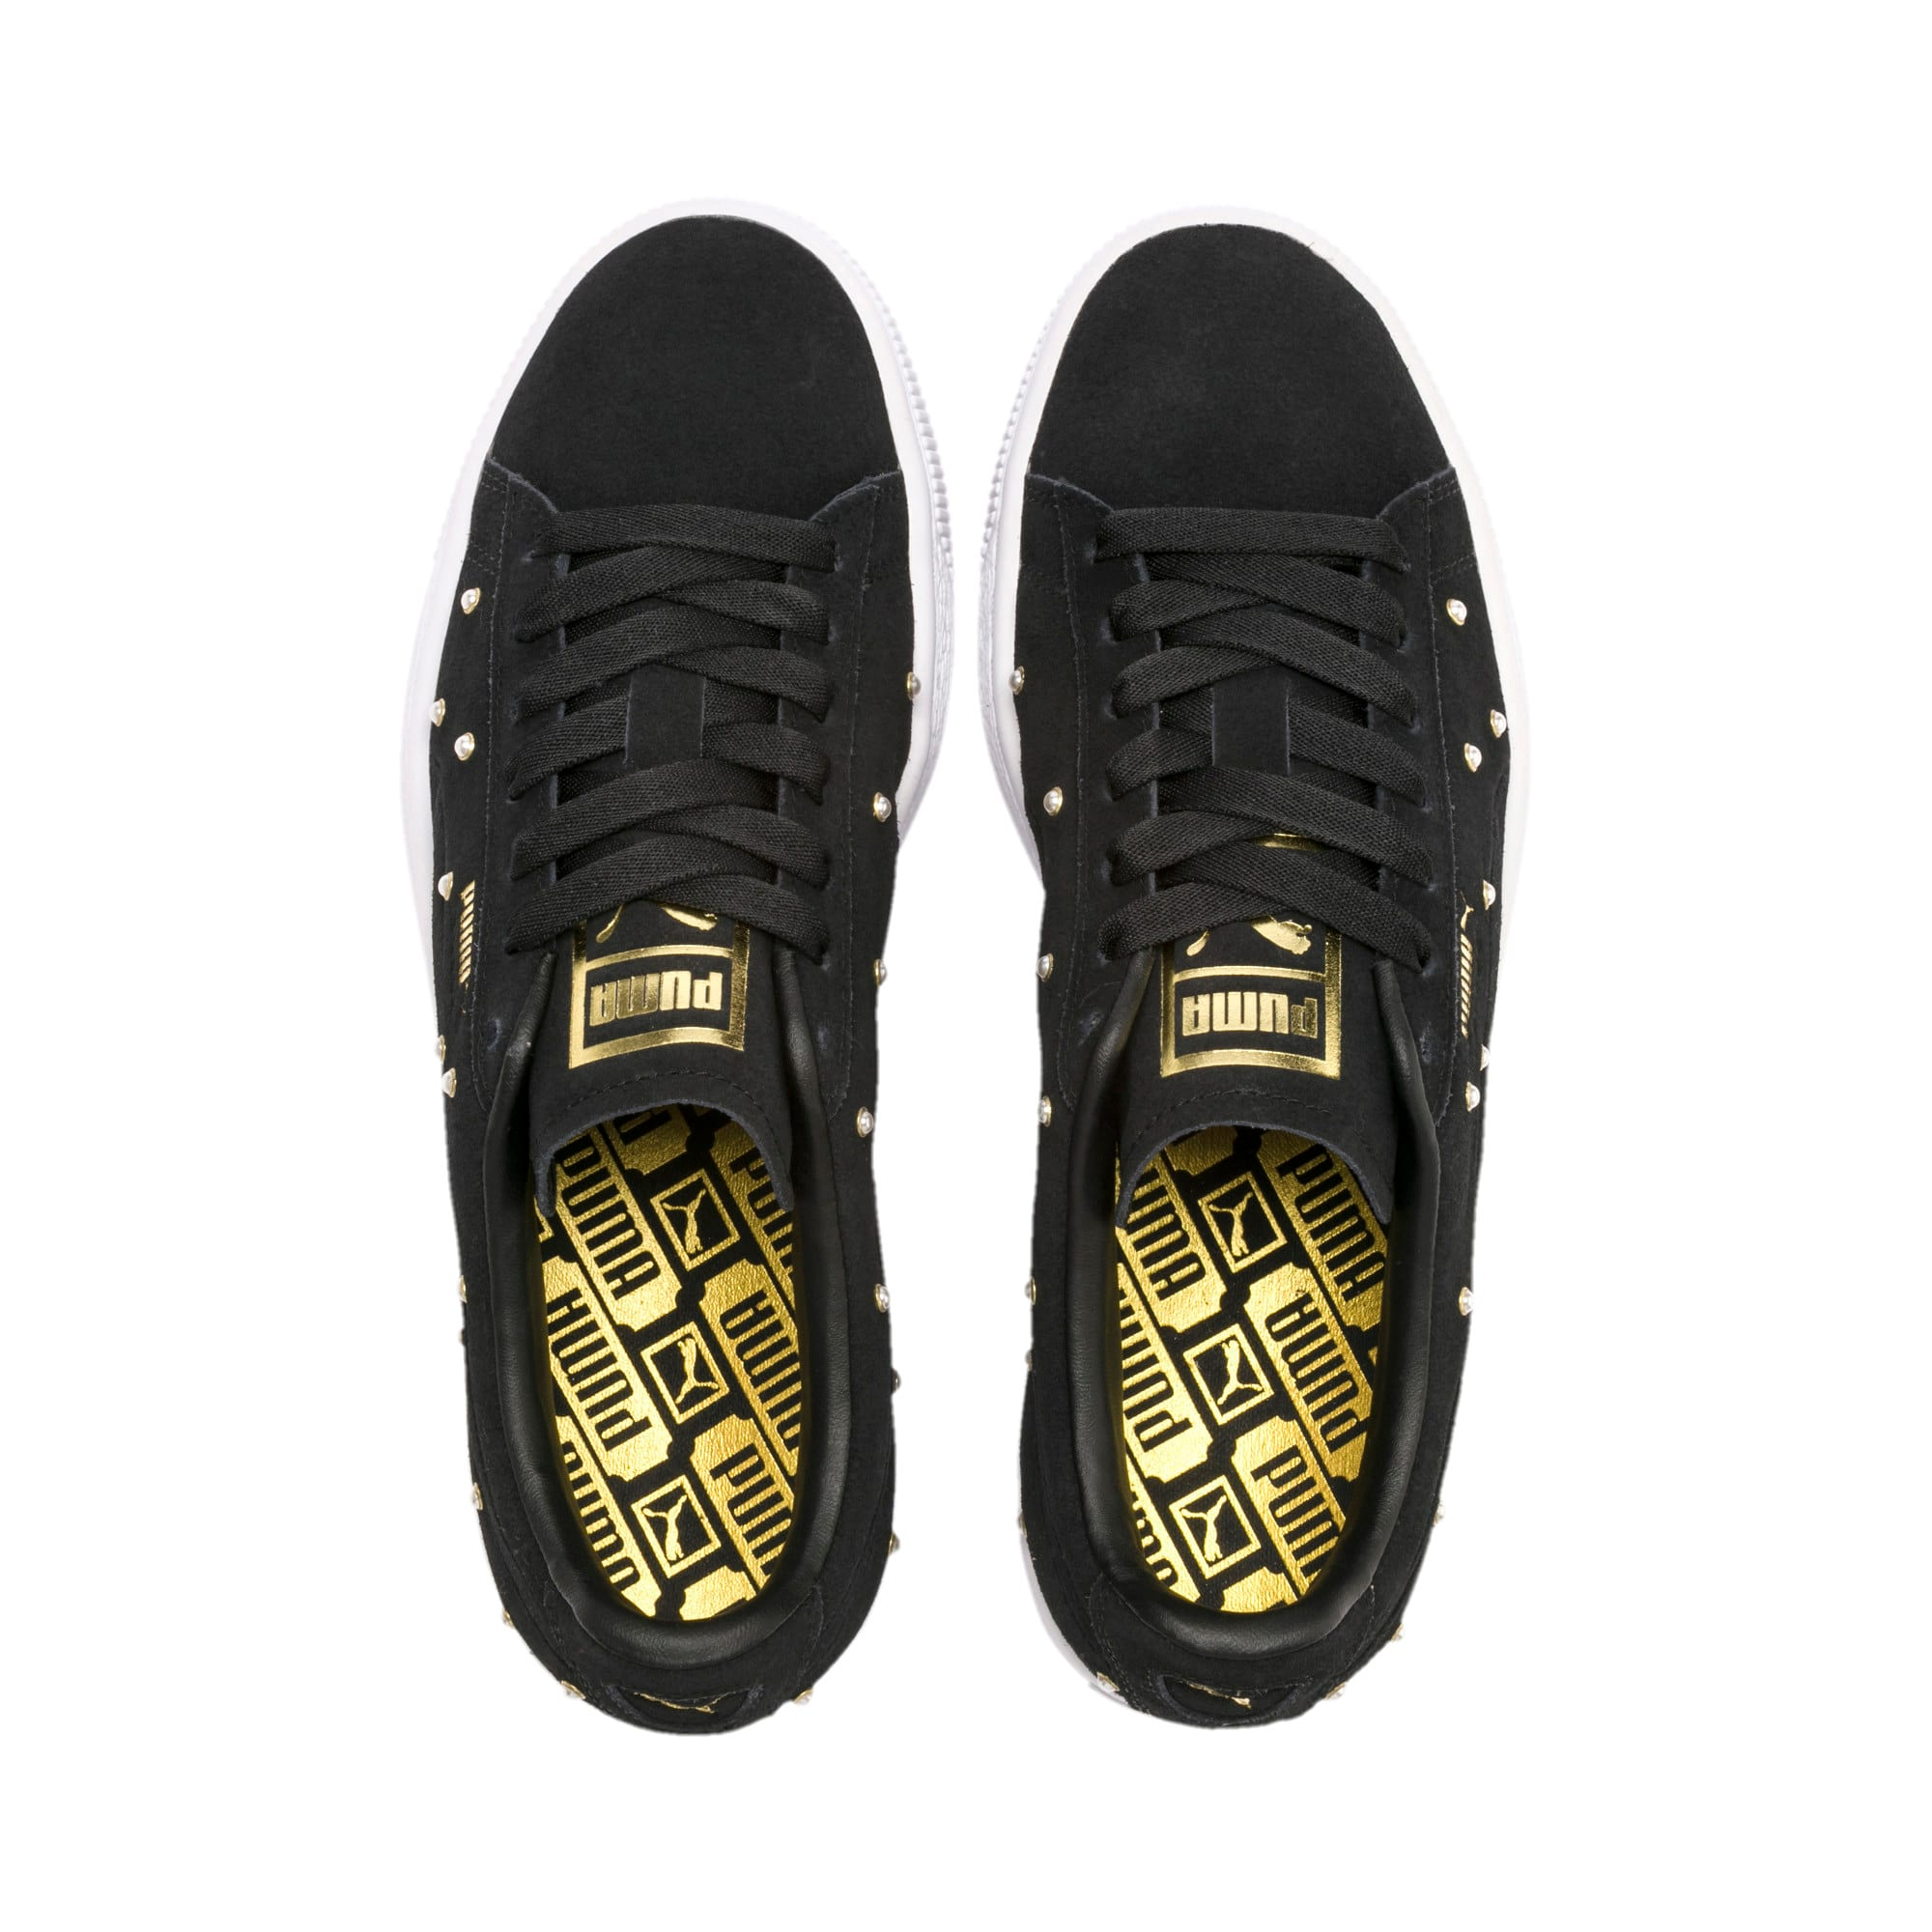 Thumbnail 7 of Suede Pearl Studs Women's Sneakers, Puma Black-Puma Team Gold, medium